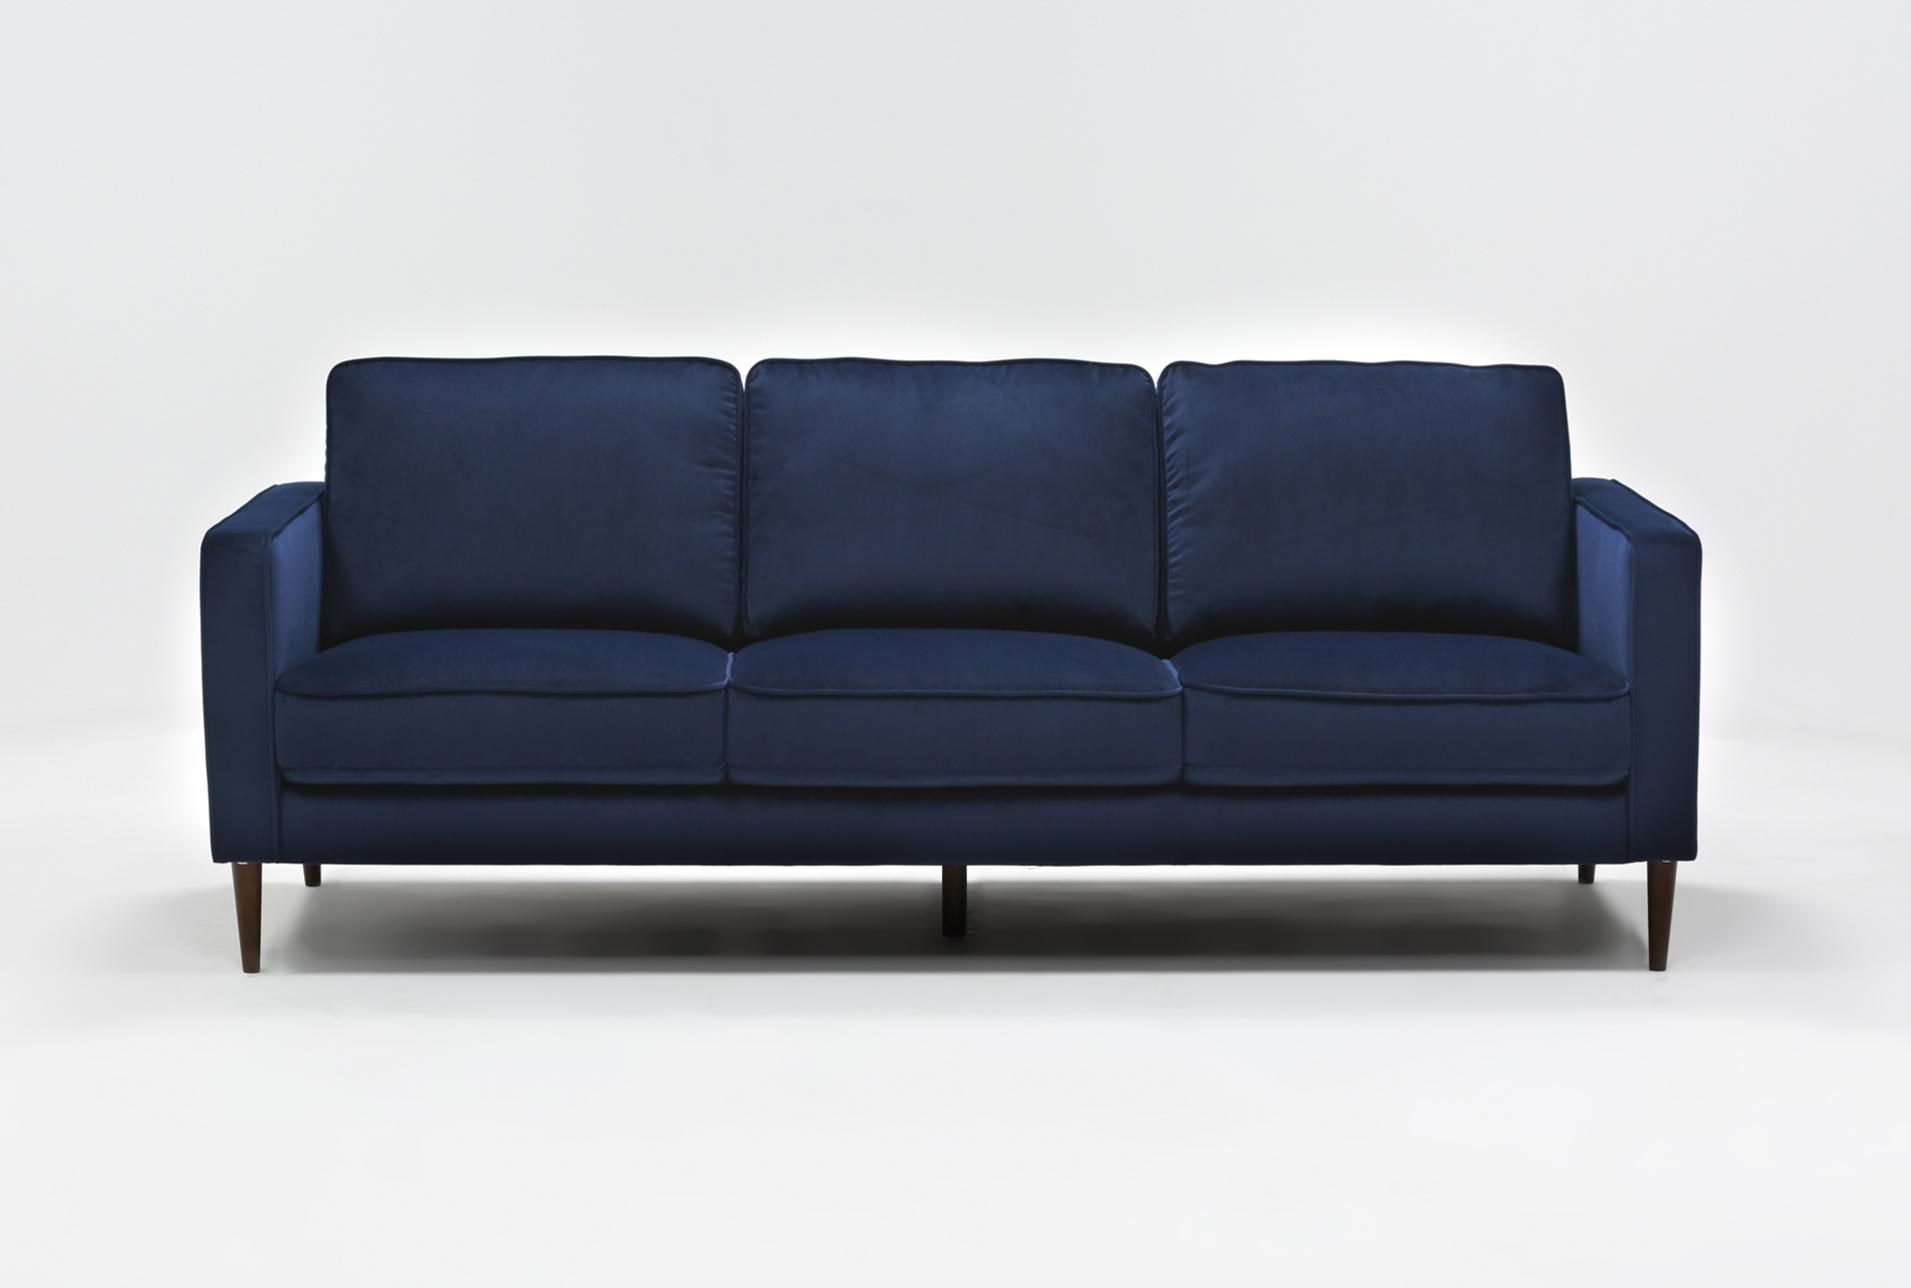 Super Fairfax Denim Velvet Sofa Gmtry Best Dining Table And Chair Ideas Images Gmtryco